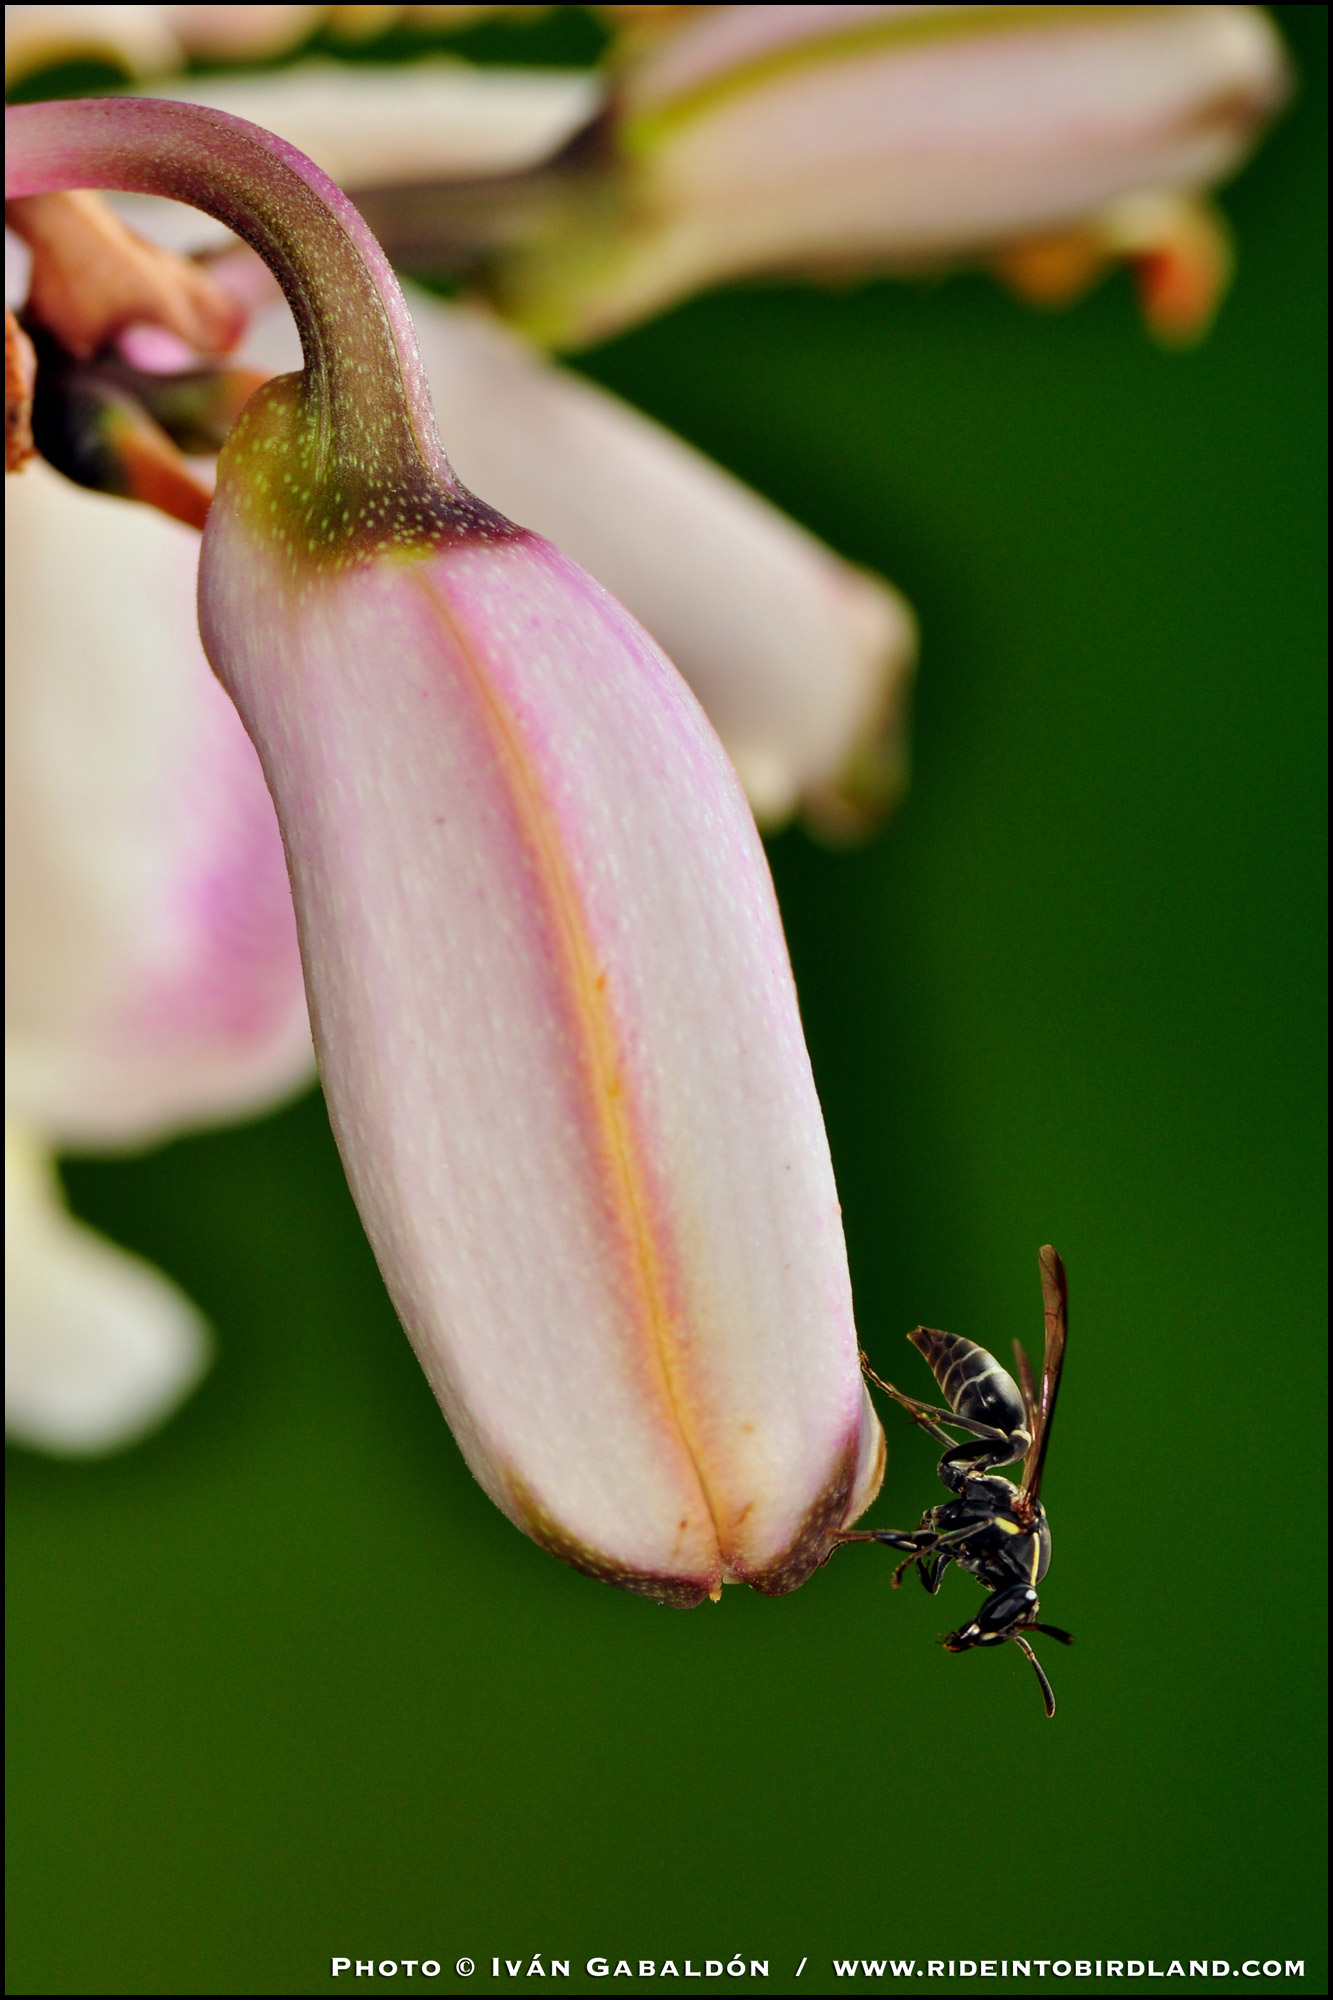 The wasp seem to like this spot, but as far as I could tell, she was not collecting nectar, as were the ants. (Photo © Iván Gabaldón).